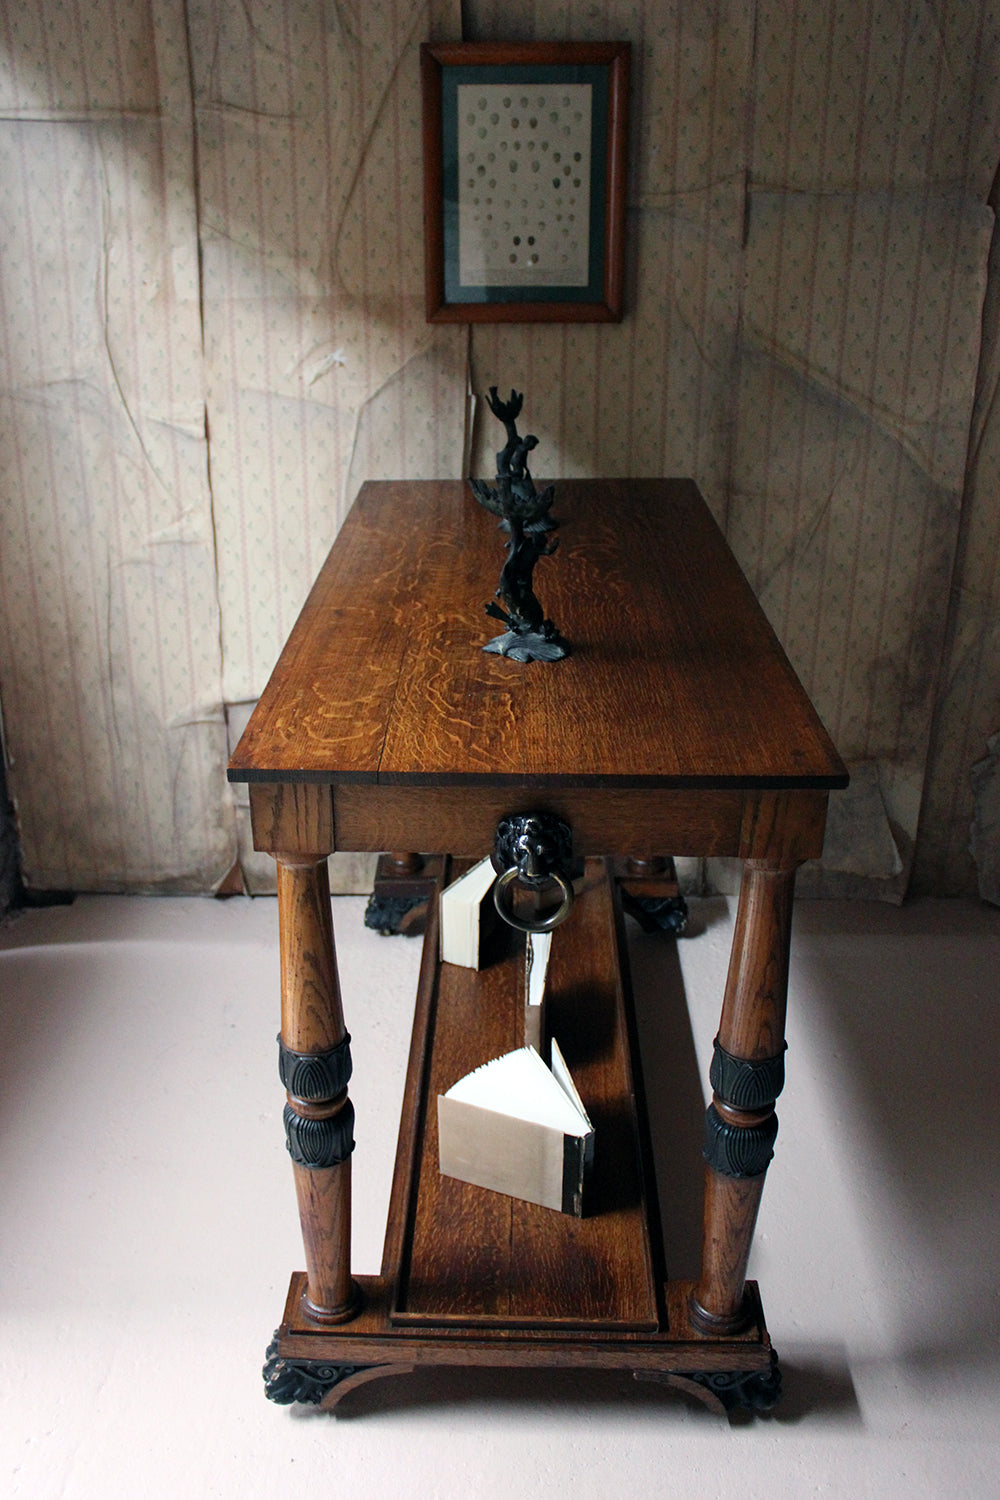 A Late Regency Period Golden Oak & Ebonised Library Table c.1820-25